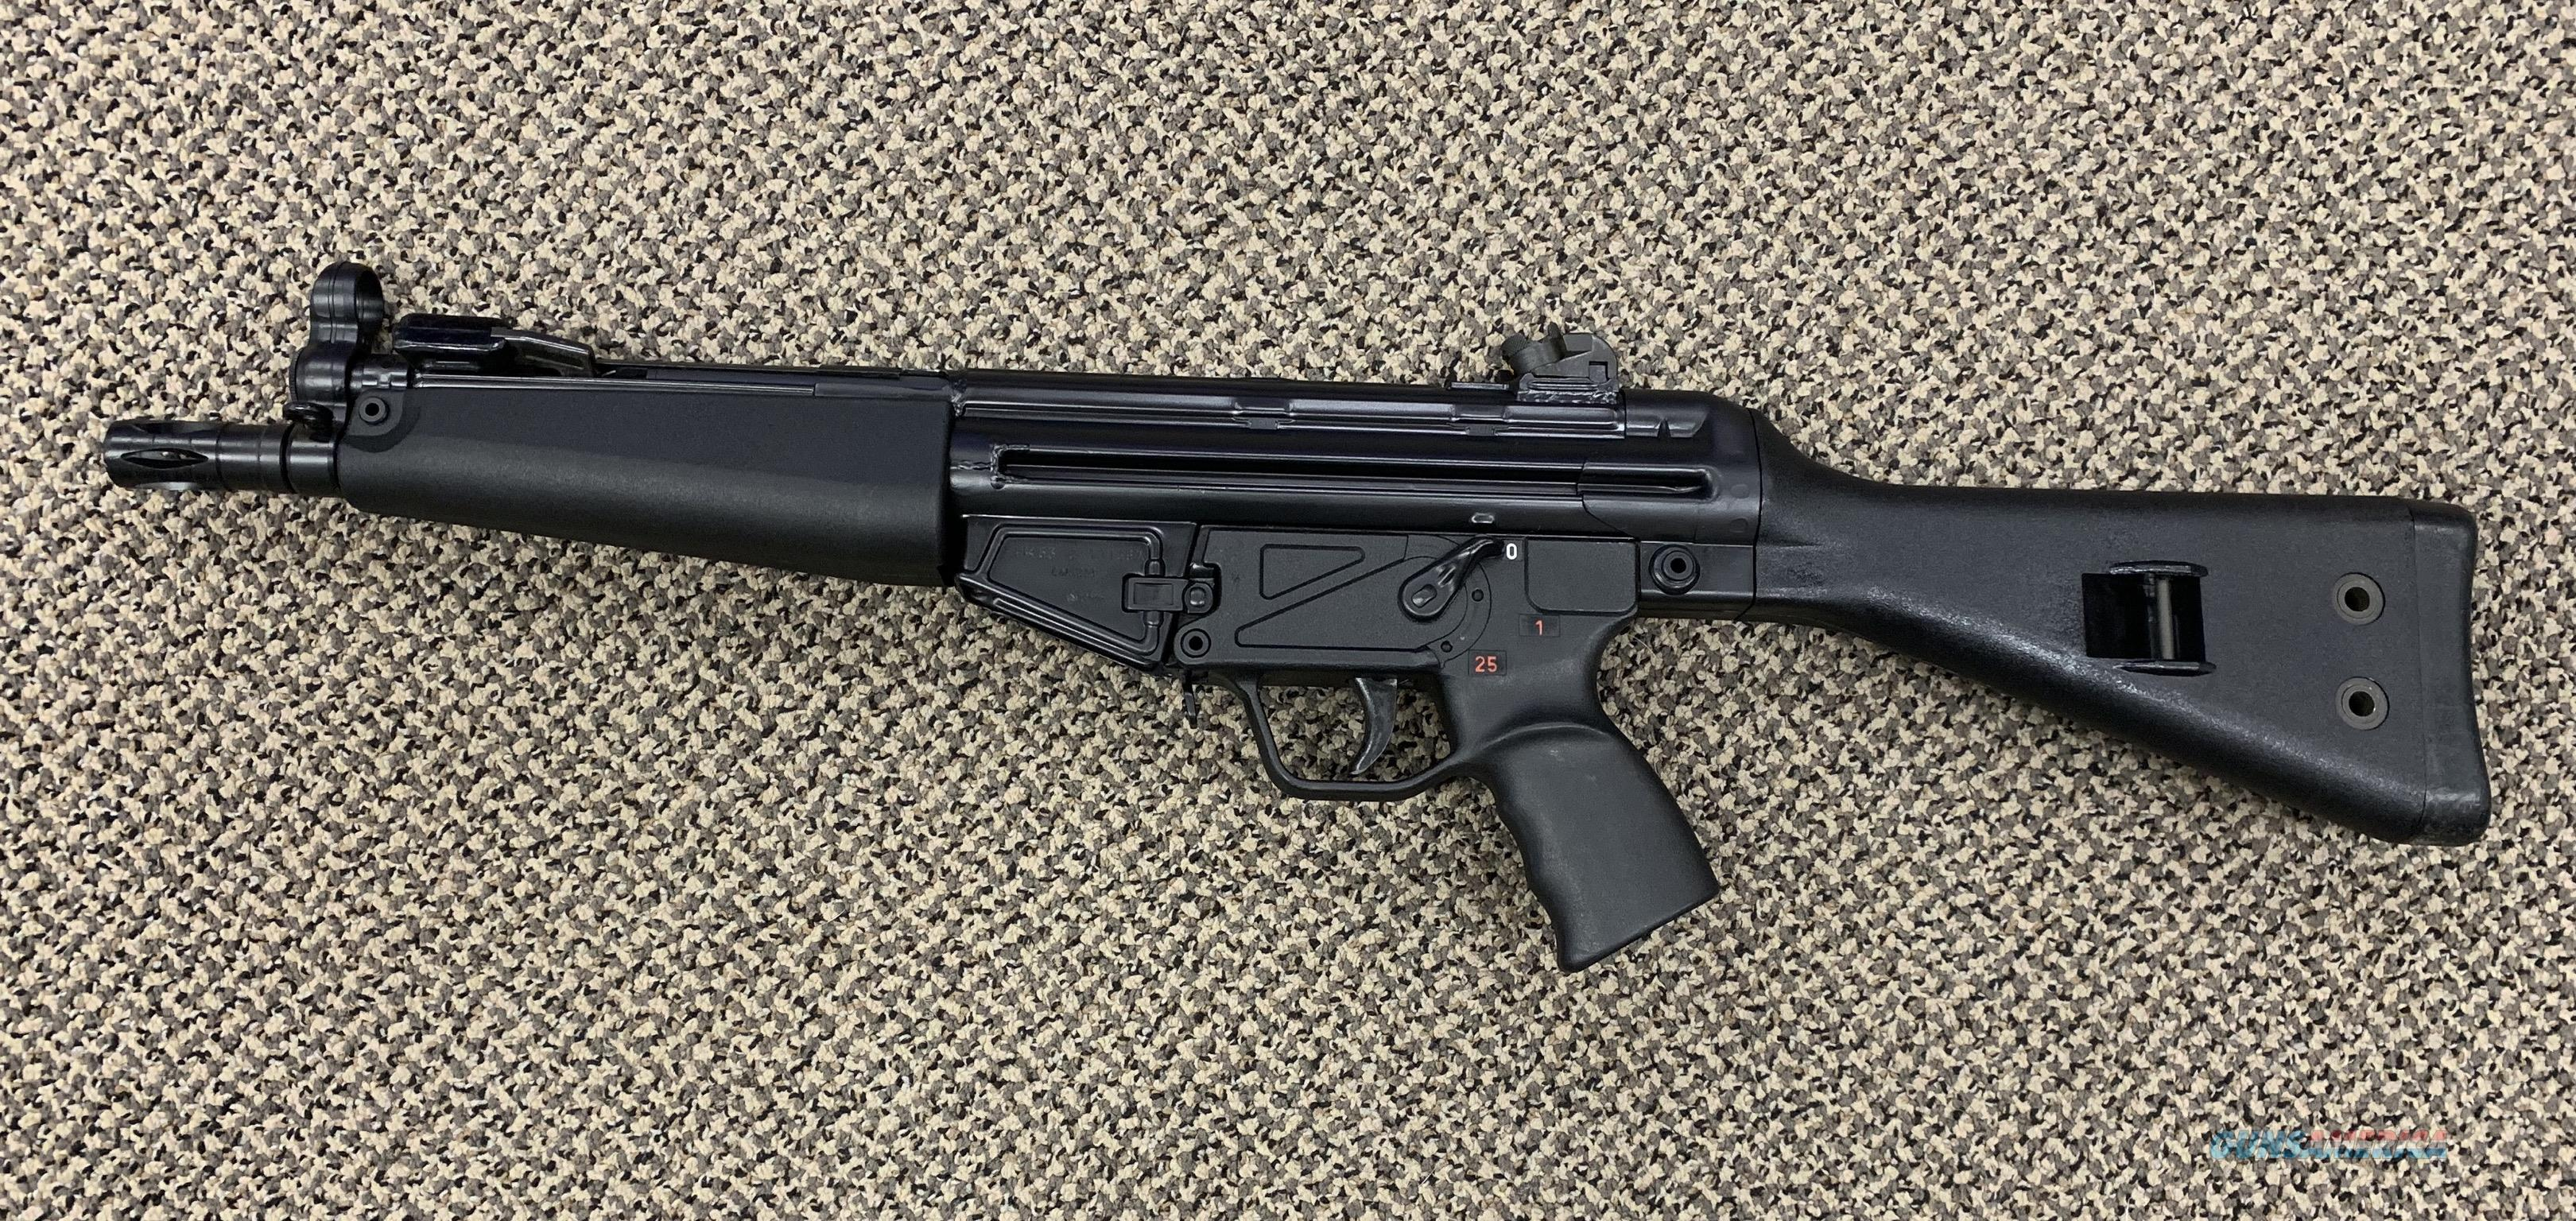 HK HK53 A2 PRE 1986 DEALER SAMPLE FULL AUTO MUST BE SOLD TO CLASS 3 DEALER  ONLY